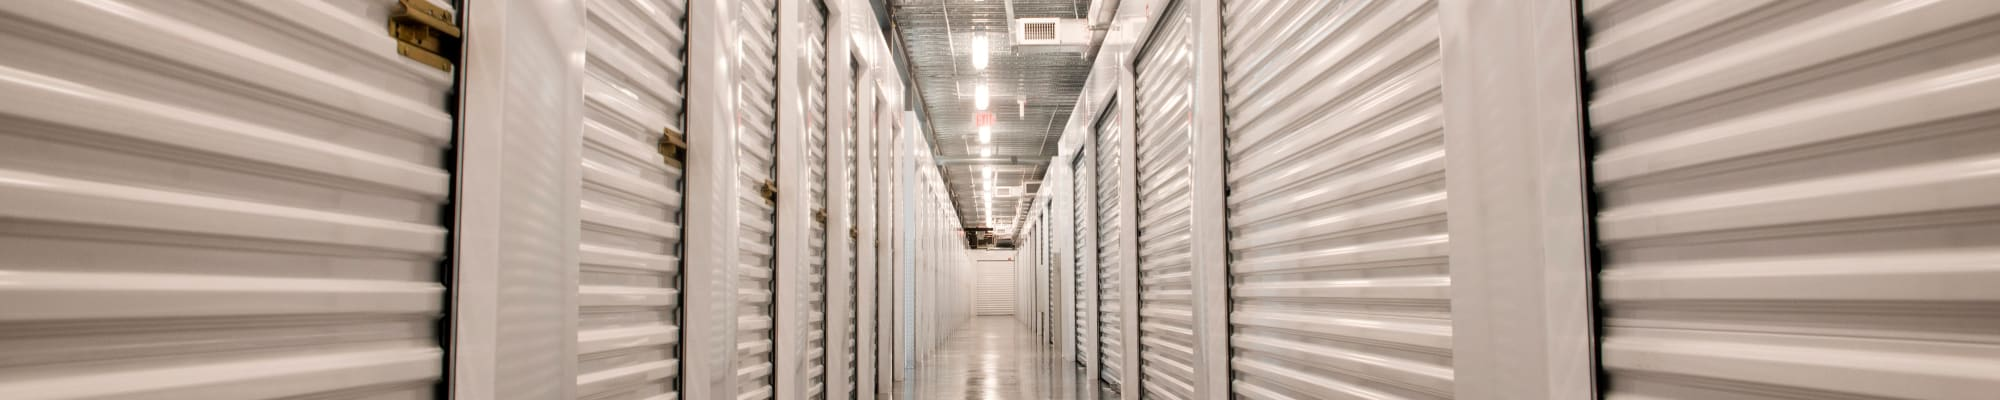 Learn about what we offer at Spacebox Storage Apopka in Apopka, Florida.